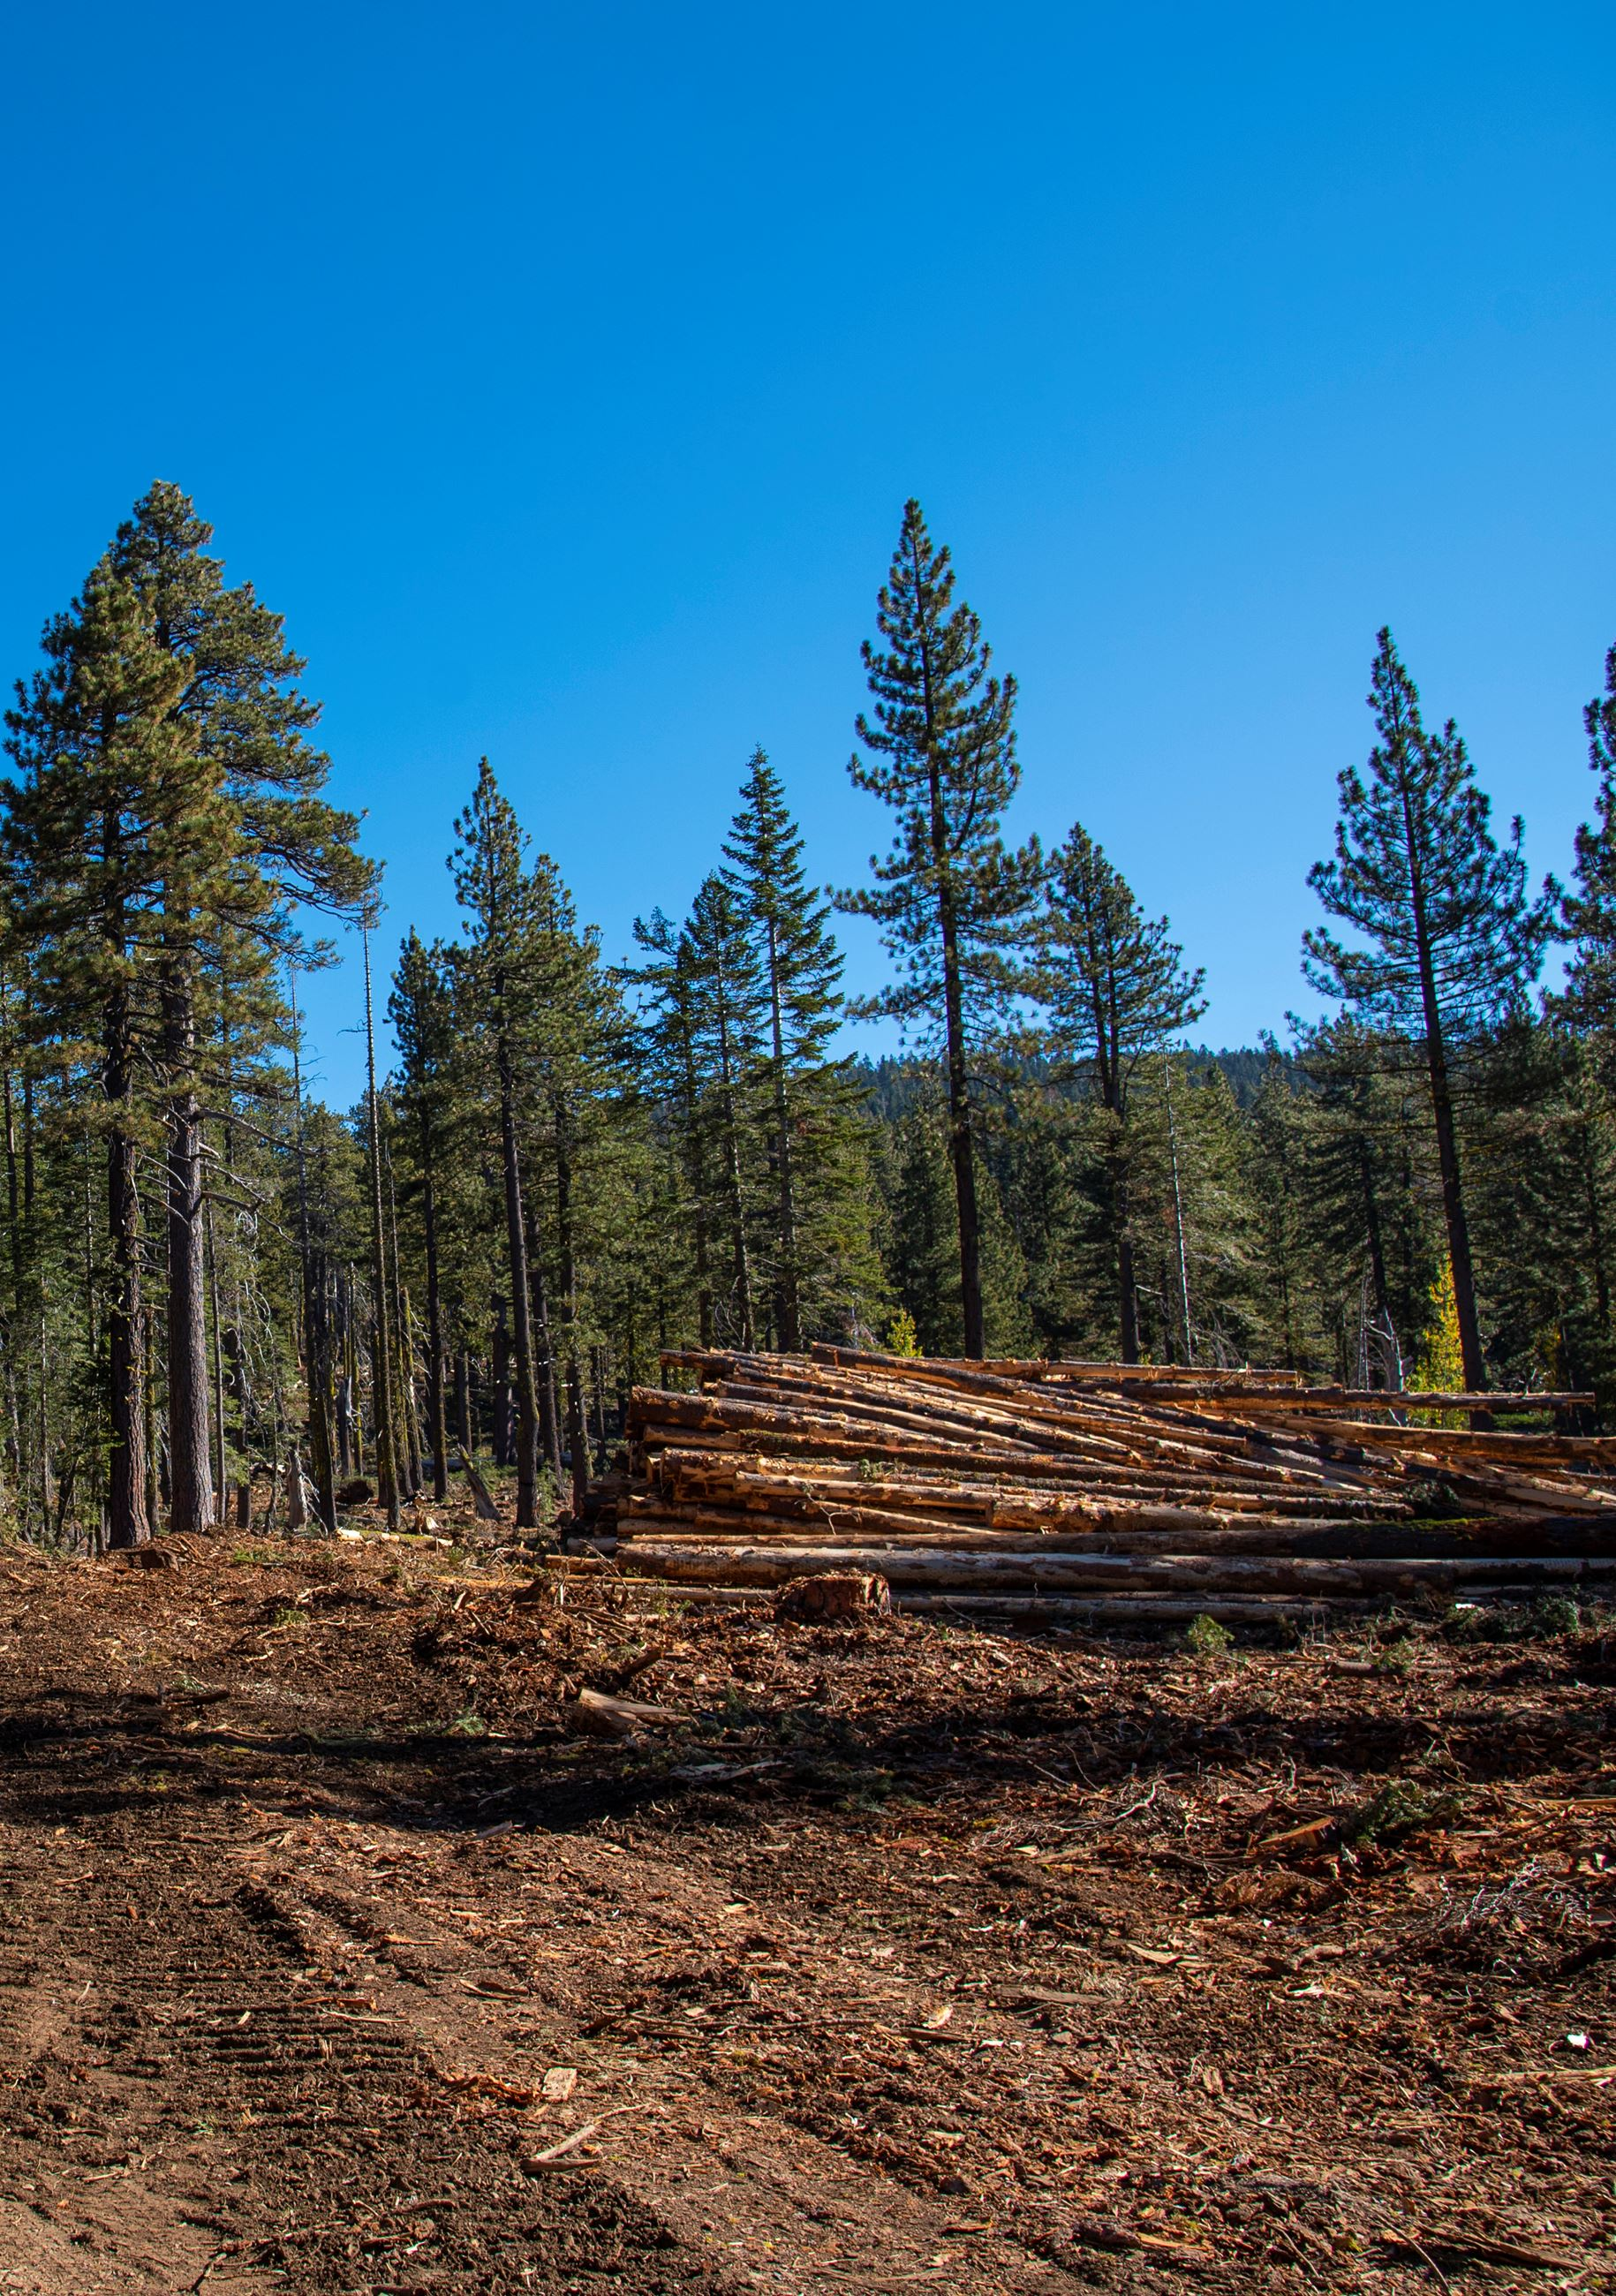 A pile of cut down trees lays on the ground in front a a group of large standing trees.